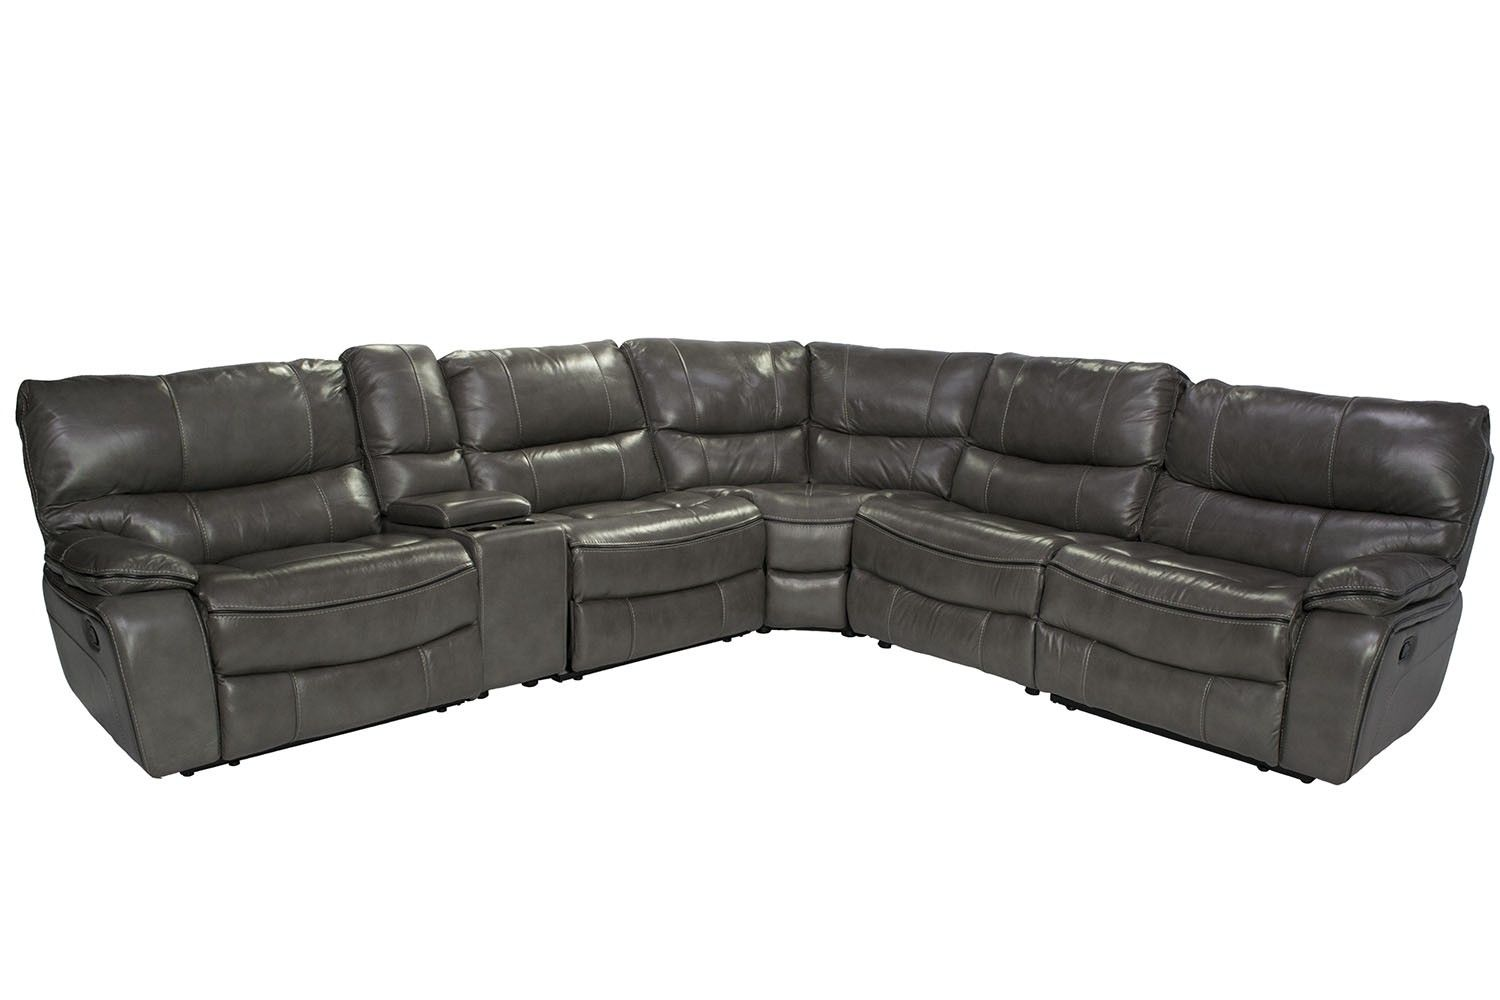 8 Piece Leather Sectional Sofa Tantra Canada 6 Design